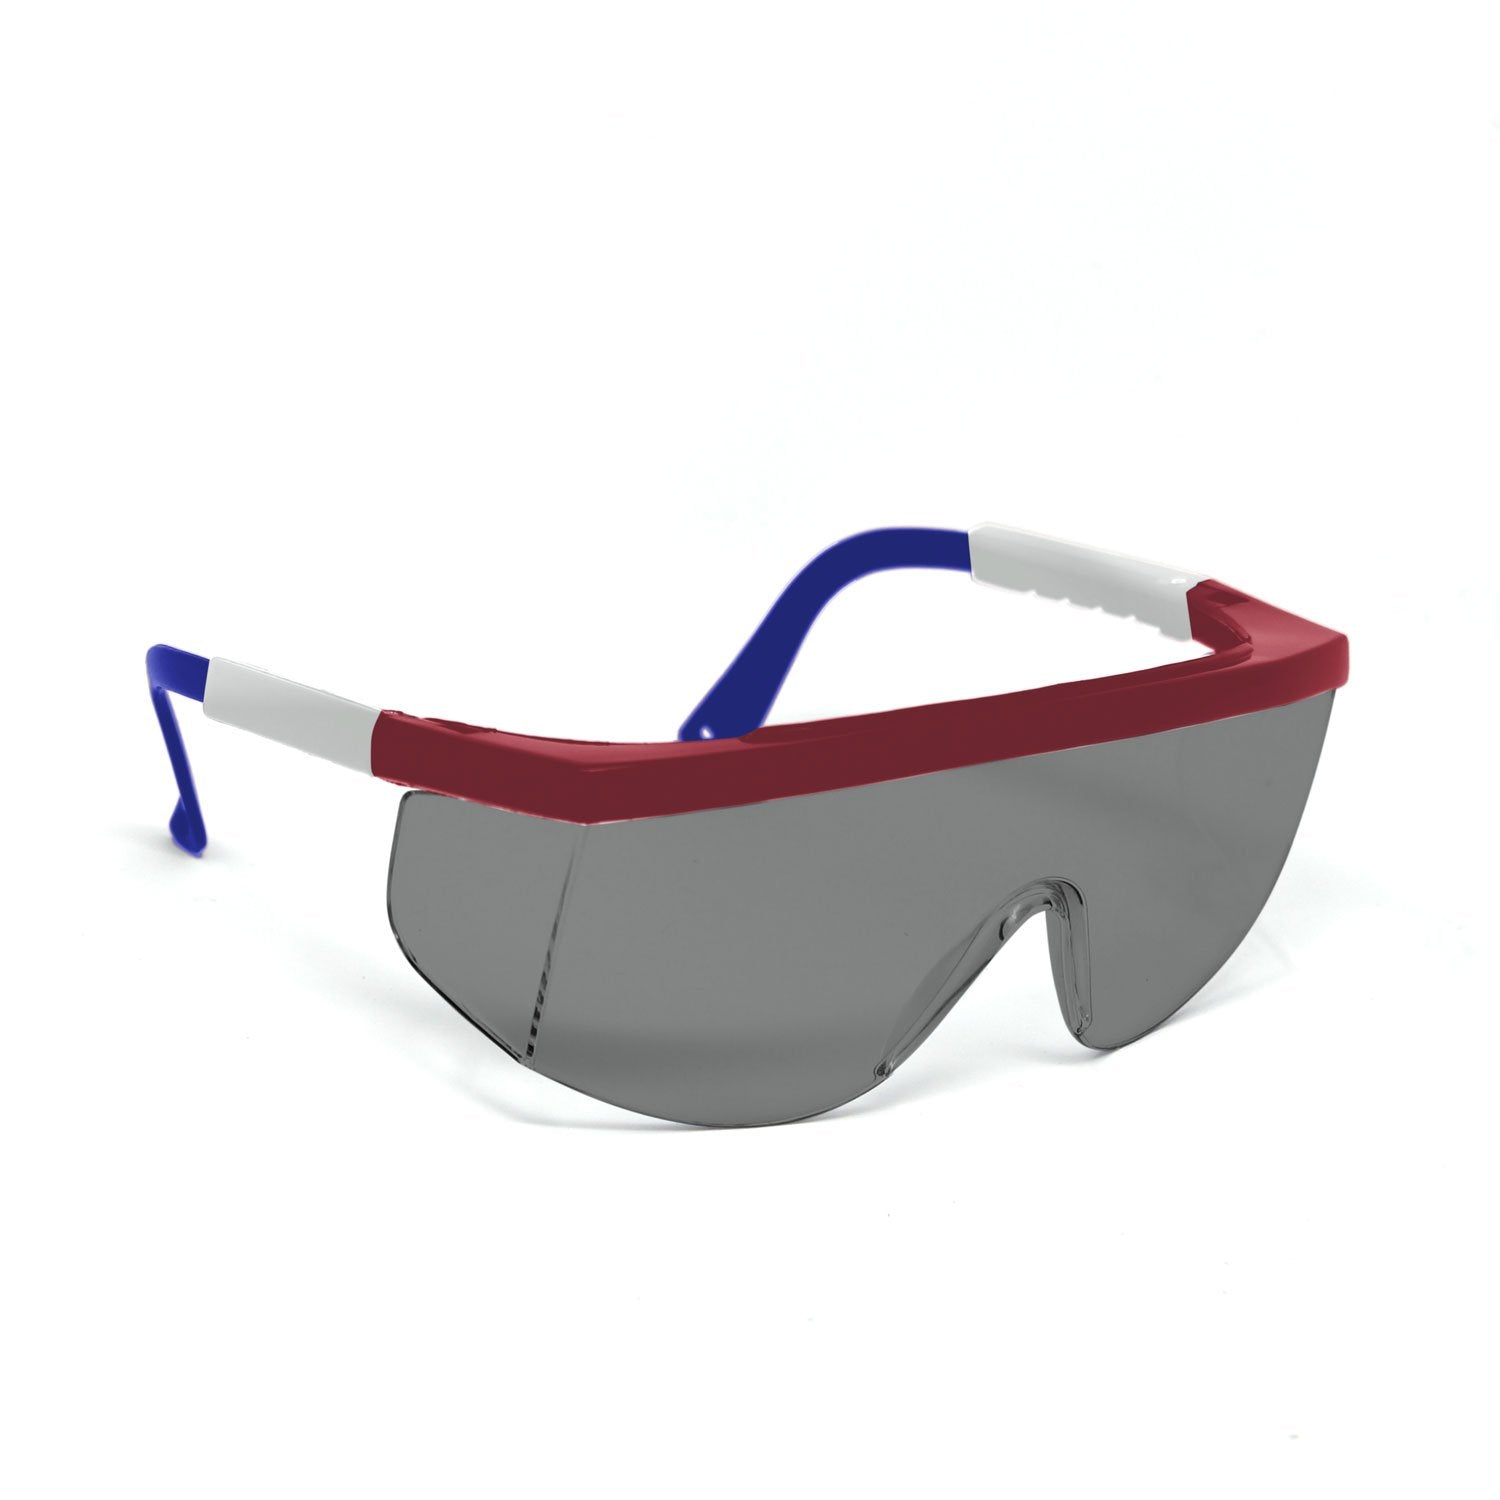 OPTIC MAX Grey Lens With Red/White/Blue Frame